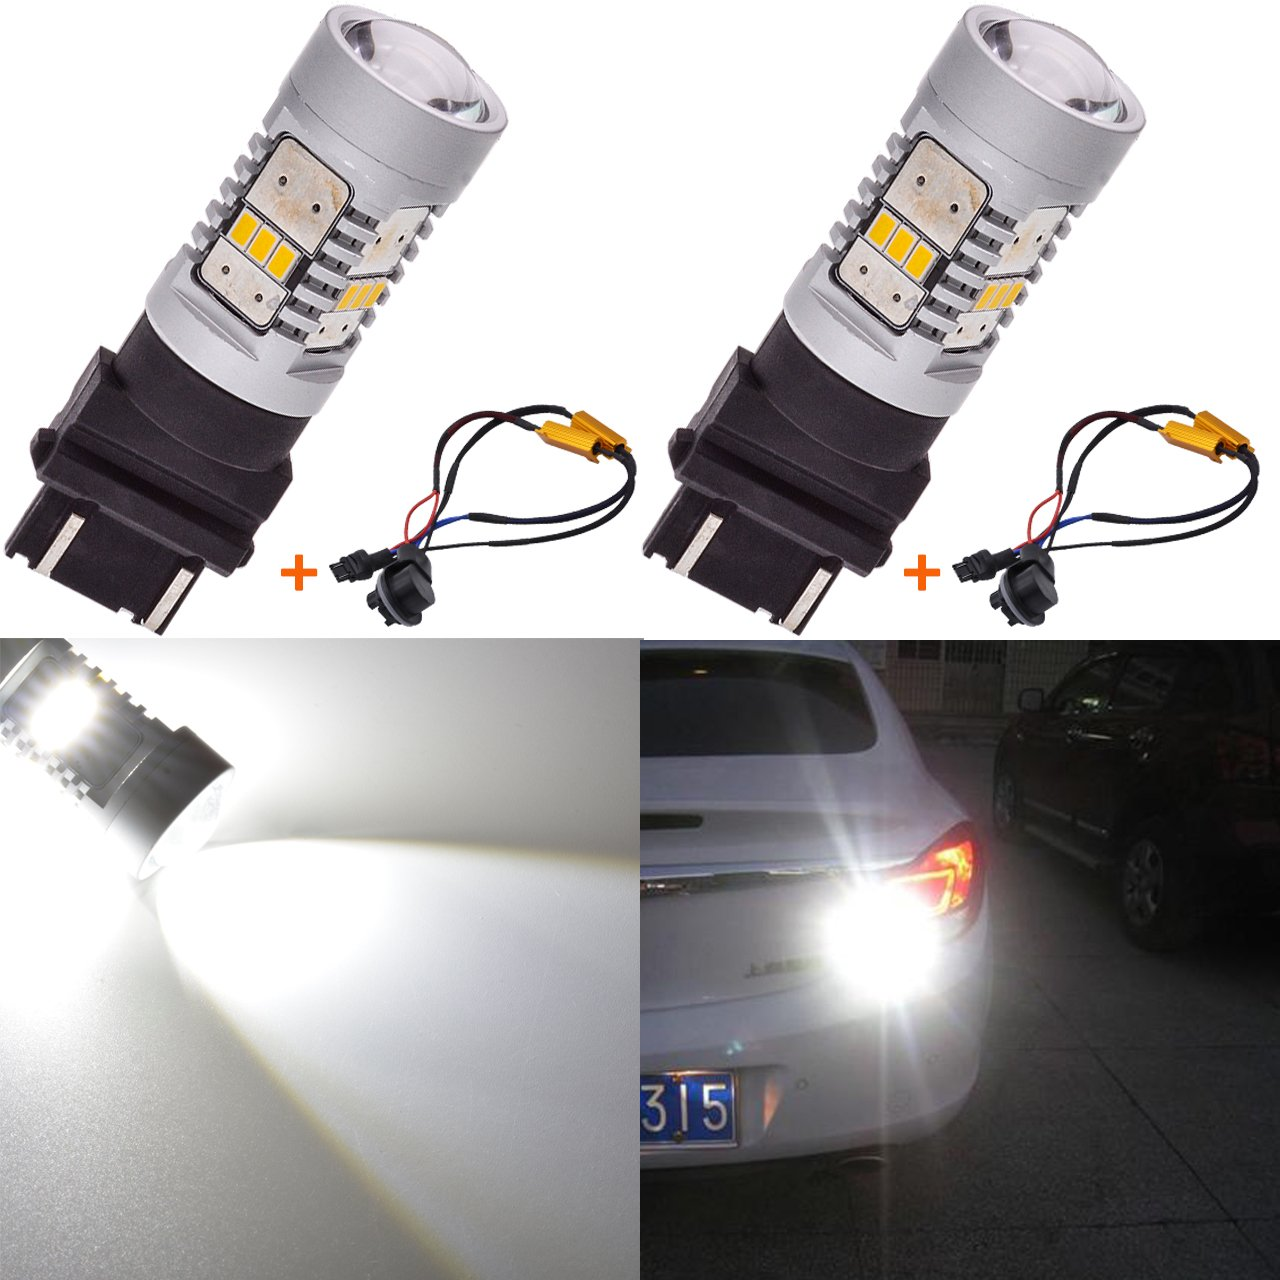 KaTur 1800LM White 1157 BAY15D 1196 1034 7528 LED Replacement Bulb 14SMD CREE 3020 RV Camper SUV MPV Car Turn Signal Bulbs Tail Brake Light Lamp Backup Lamps (Pack of 2) 1157/BAY15D